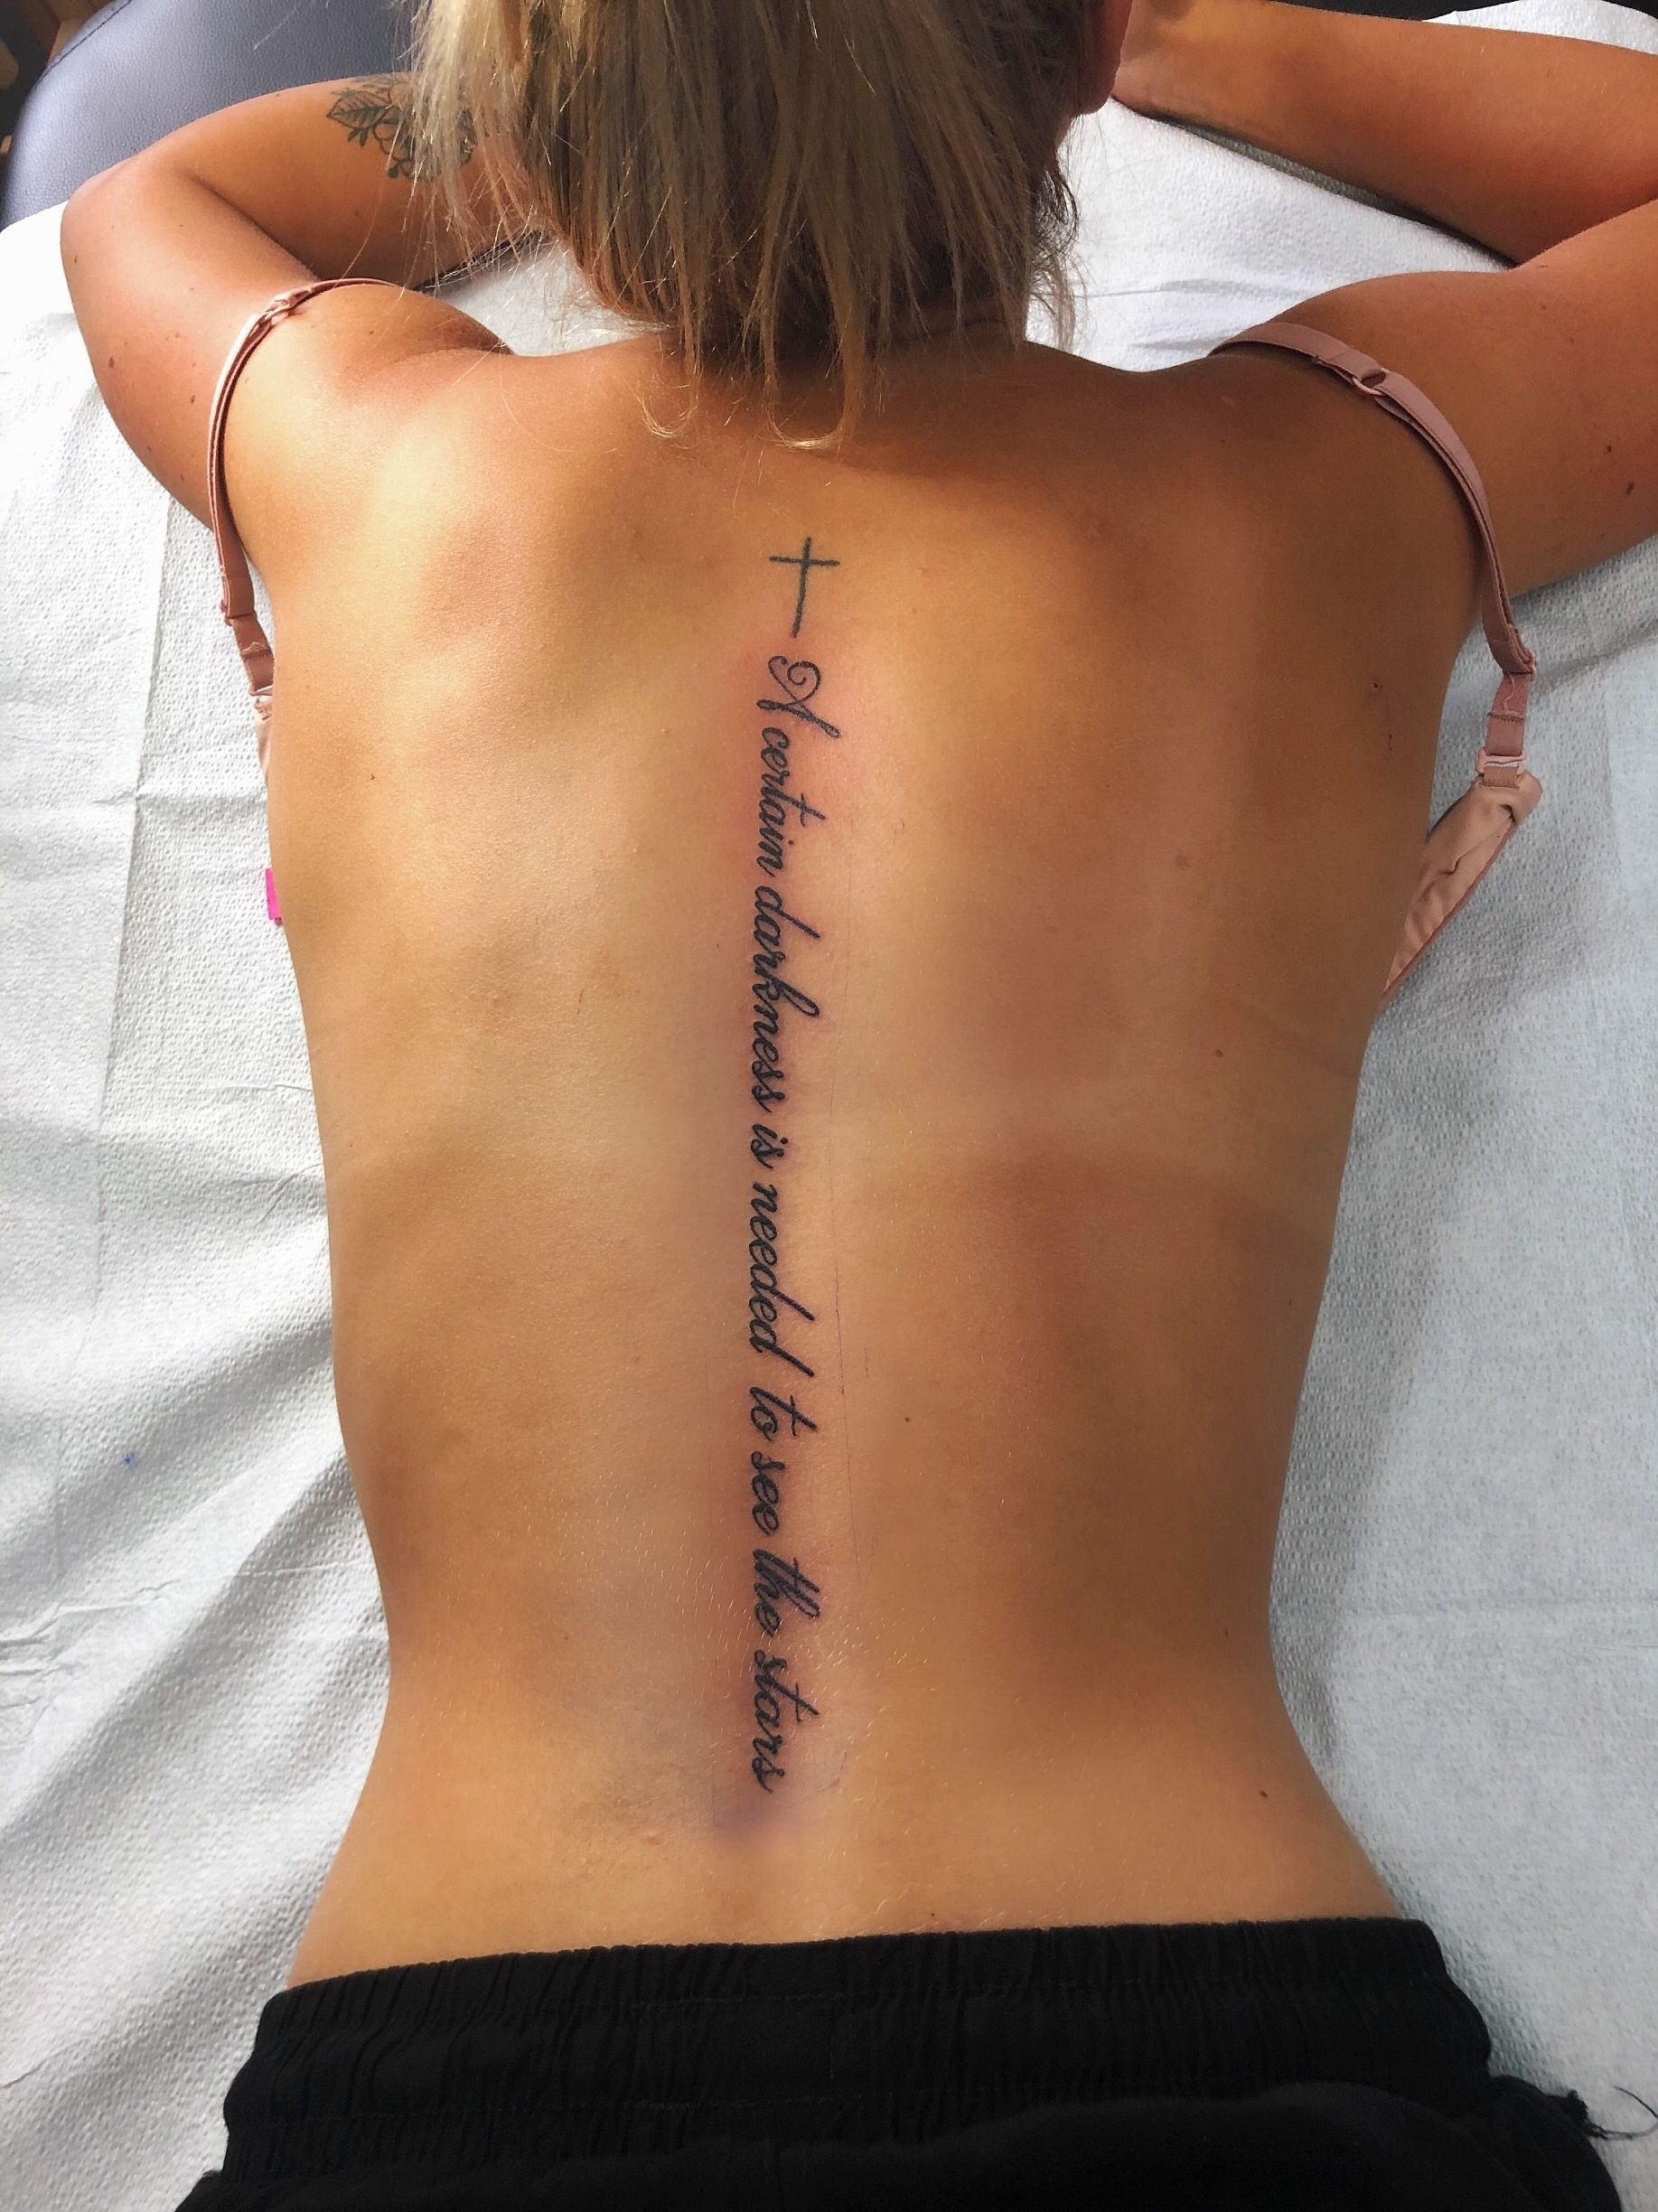 20 Unique and Beautiful Back Tattoos For Women/Girls   KnowInsiders